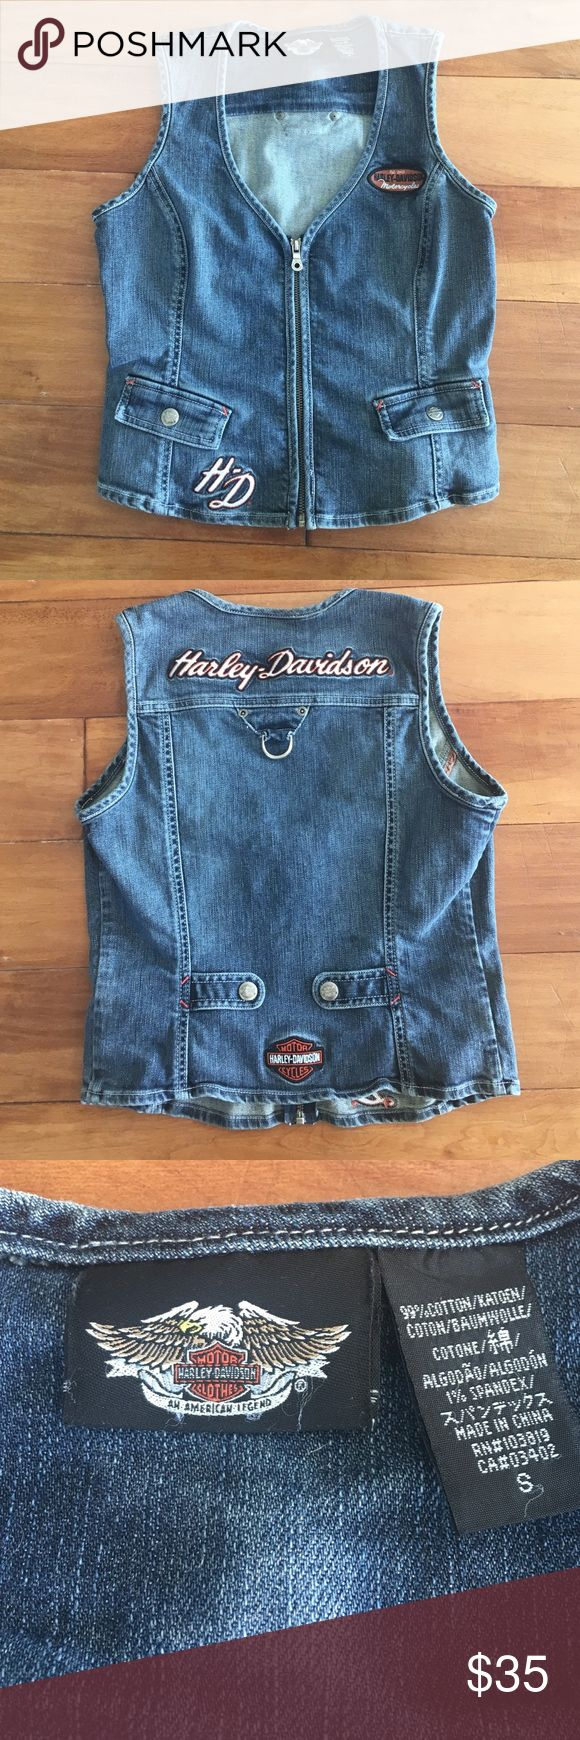 Vintage Harley Davidson Vest Such a fun 90s piece, this vest has amazing details! Denim vest with embroidery and patches on the front and back. There are Harley Davidson snaps on the front pockets and on the back as well. Looks good by itself or worn over something else. Very good vintage condition. Harley-Davidson Jackets & Coats Vests